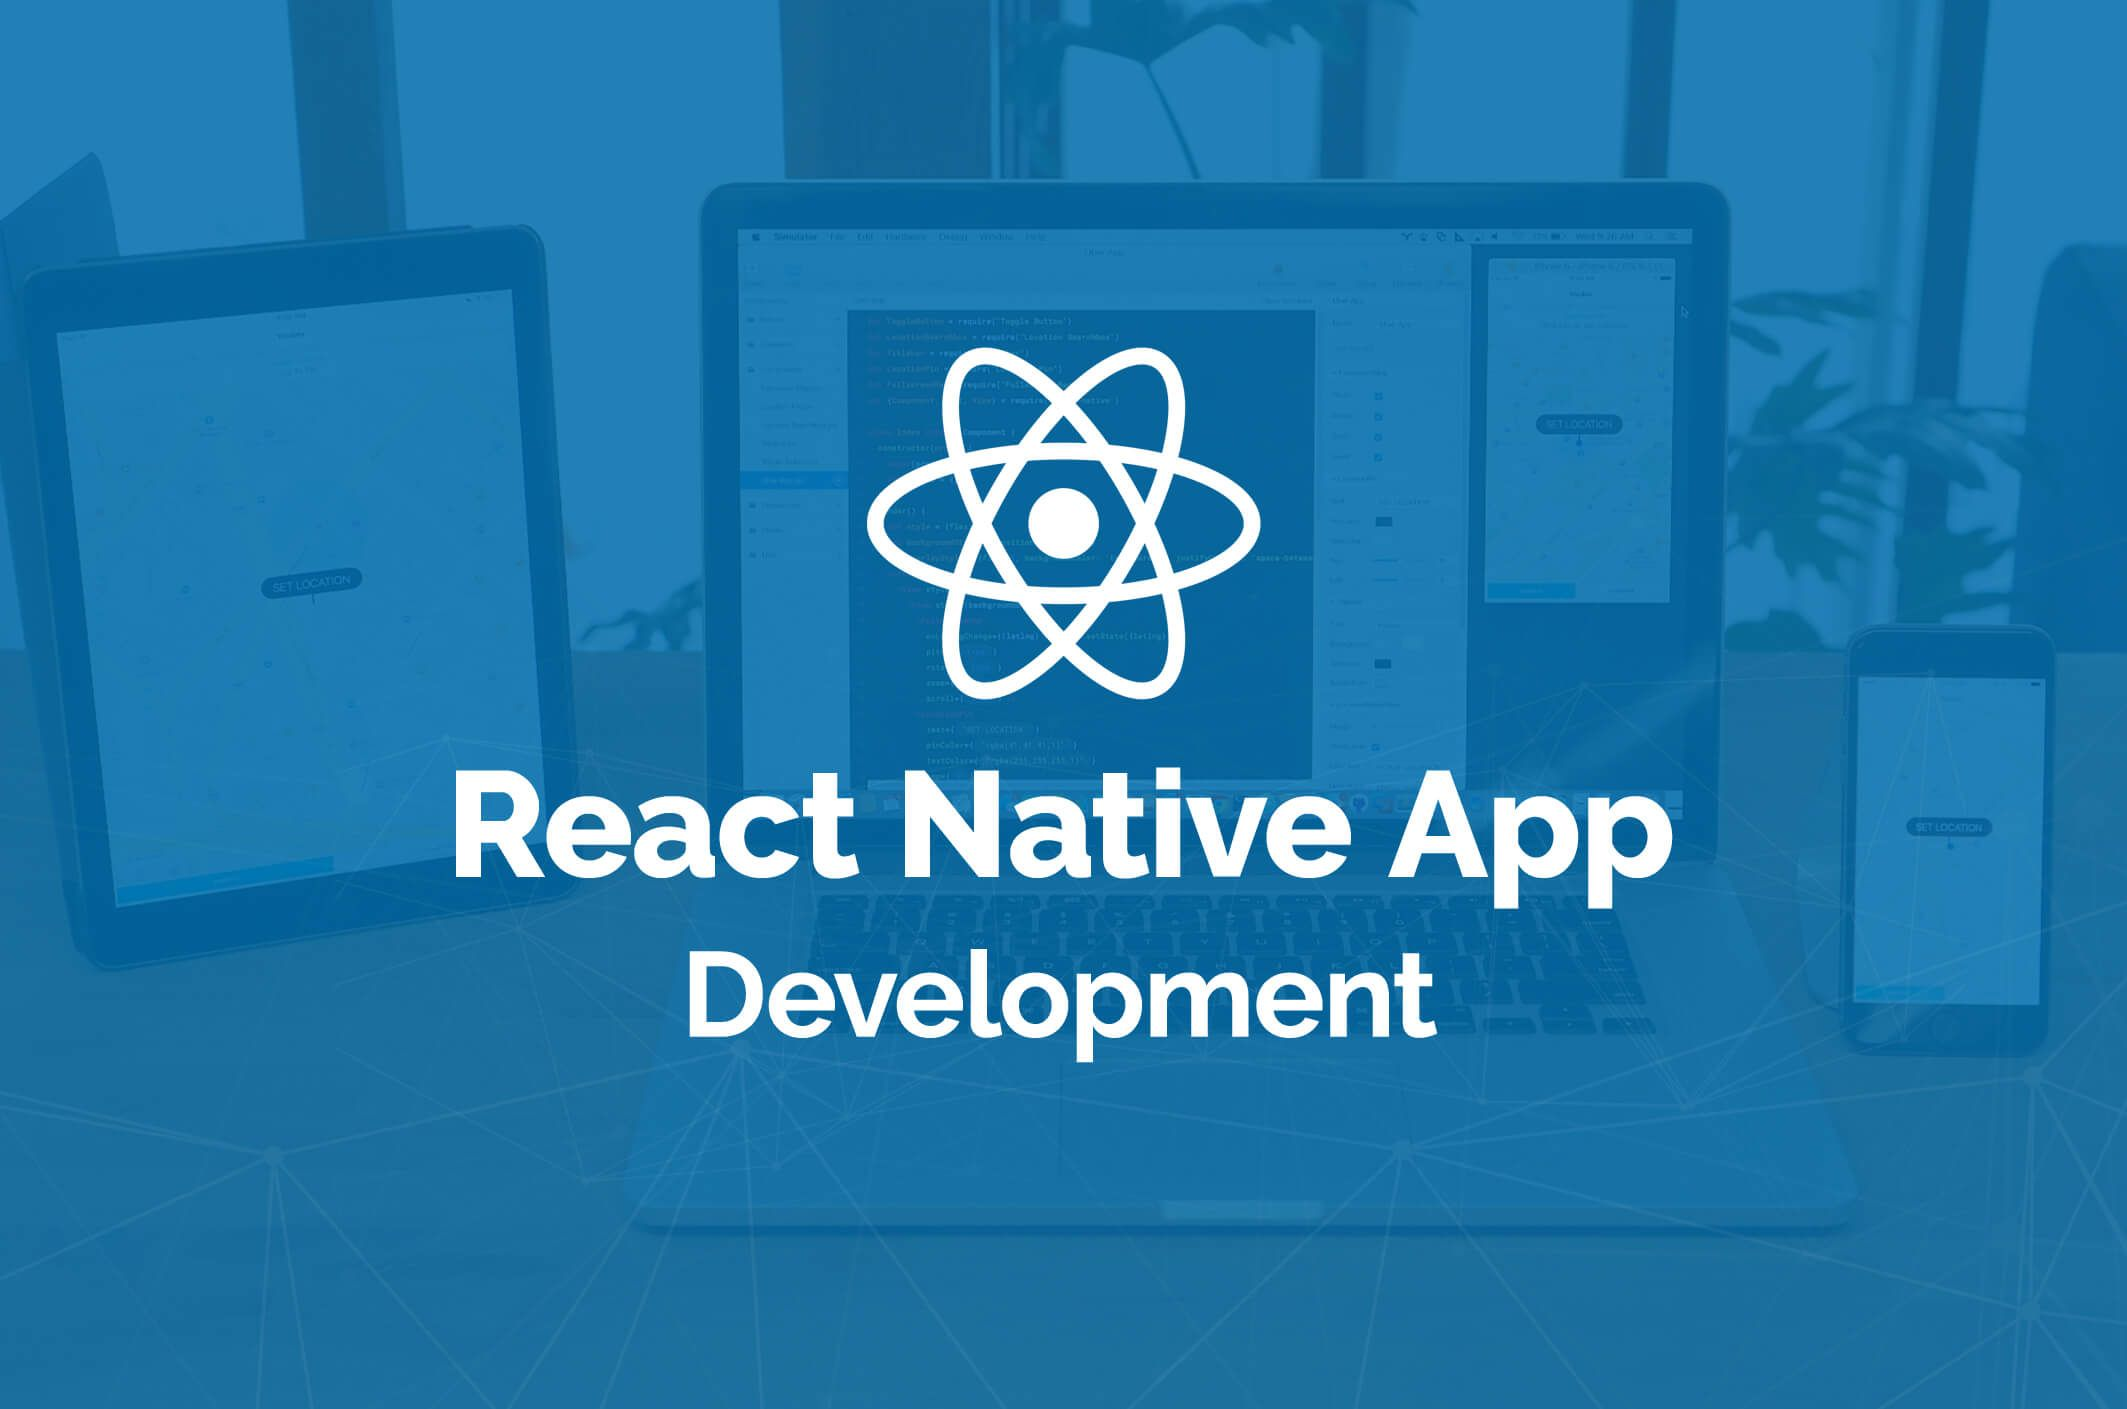 React Native Mobile App Development Services Hire React